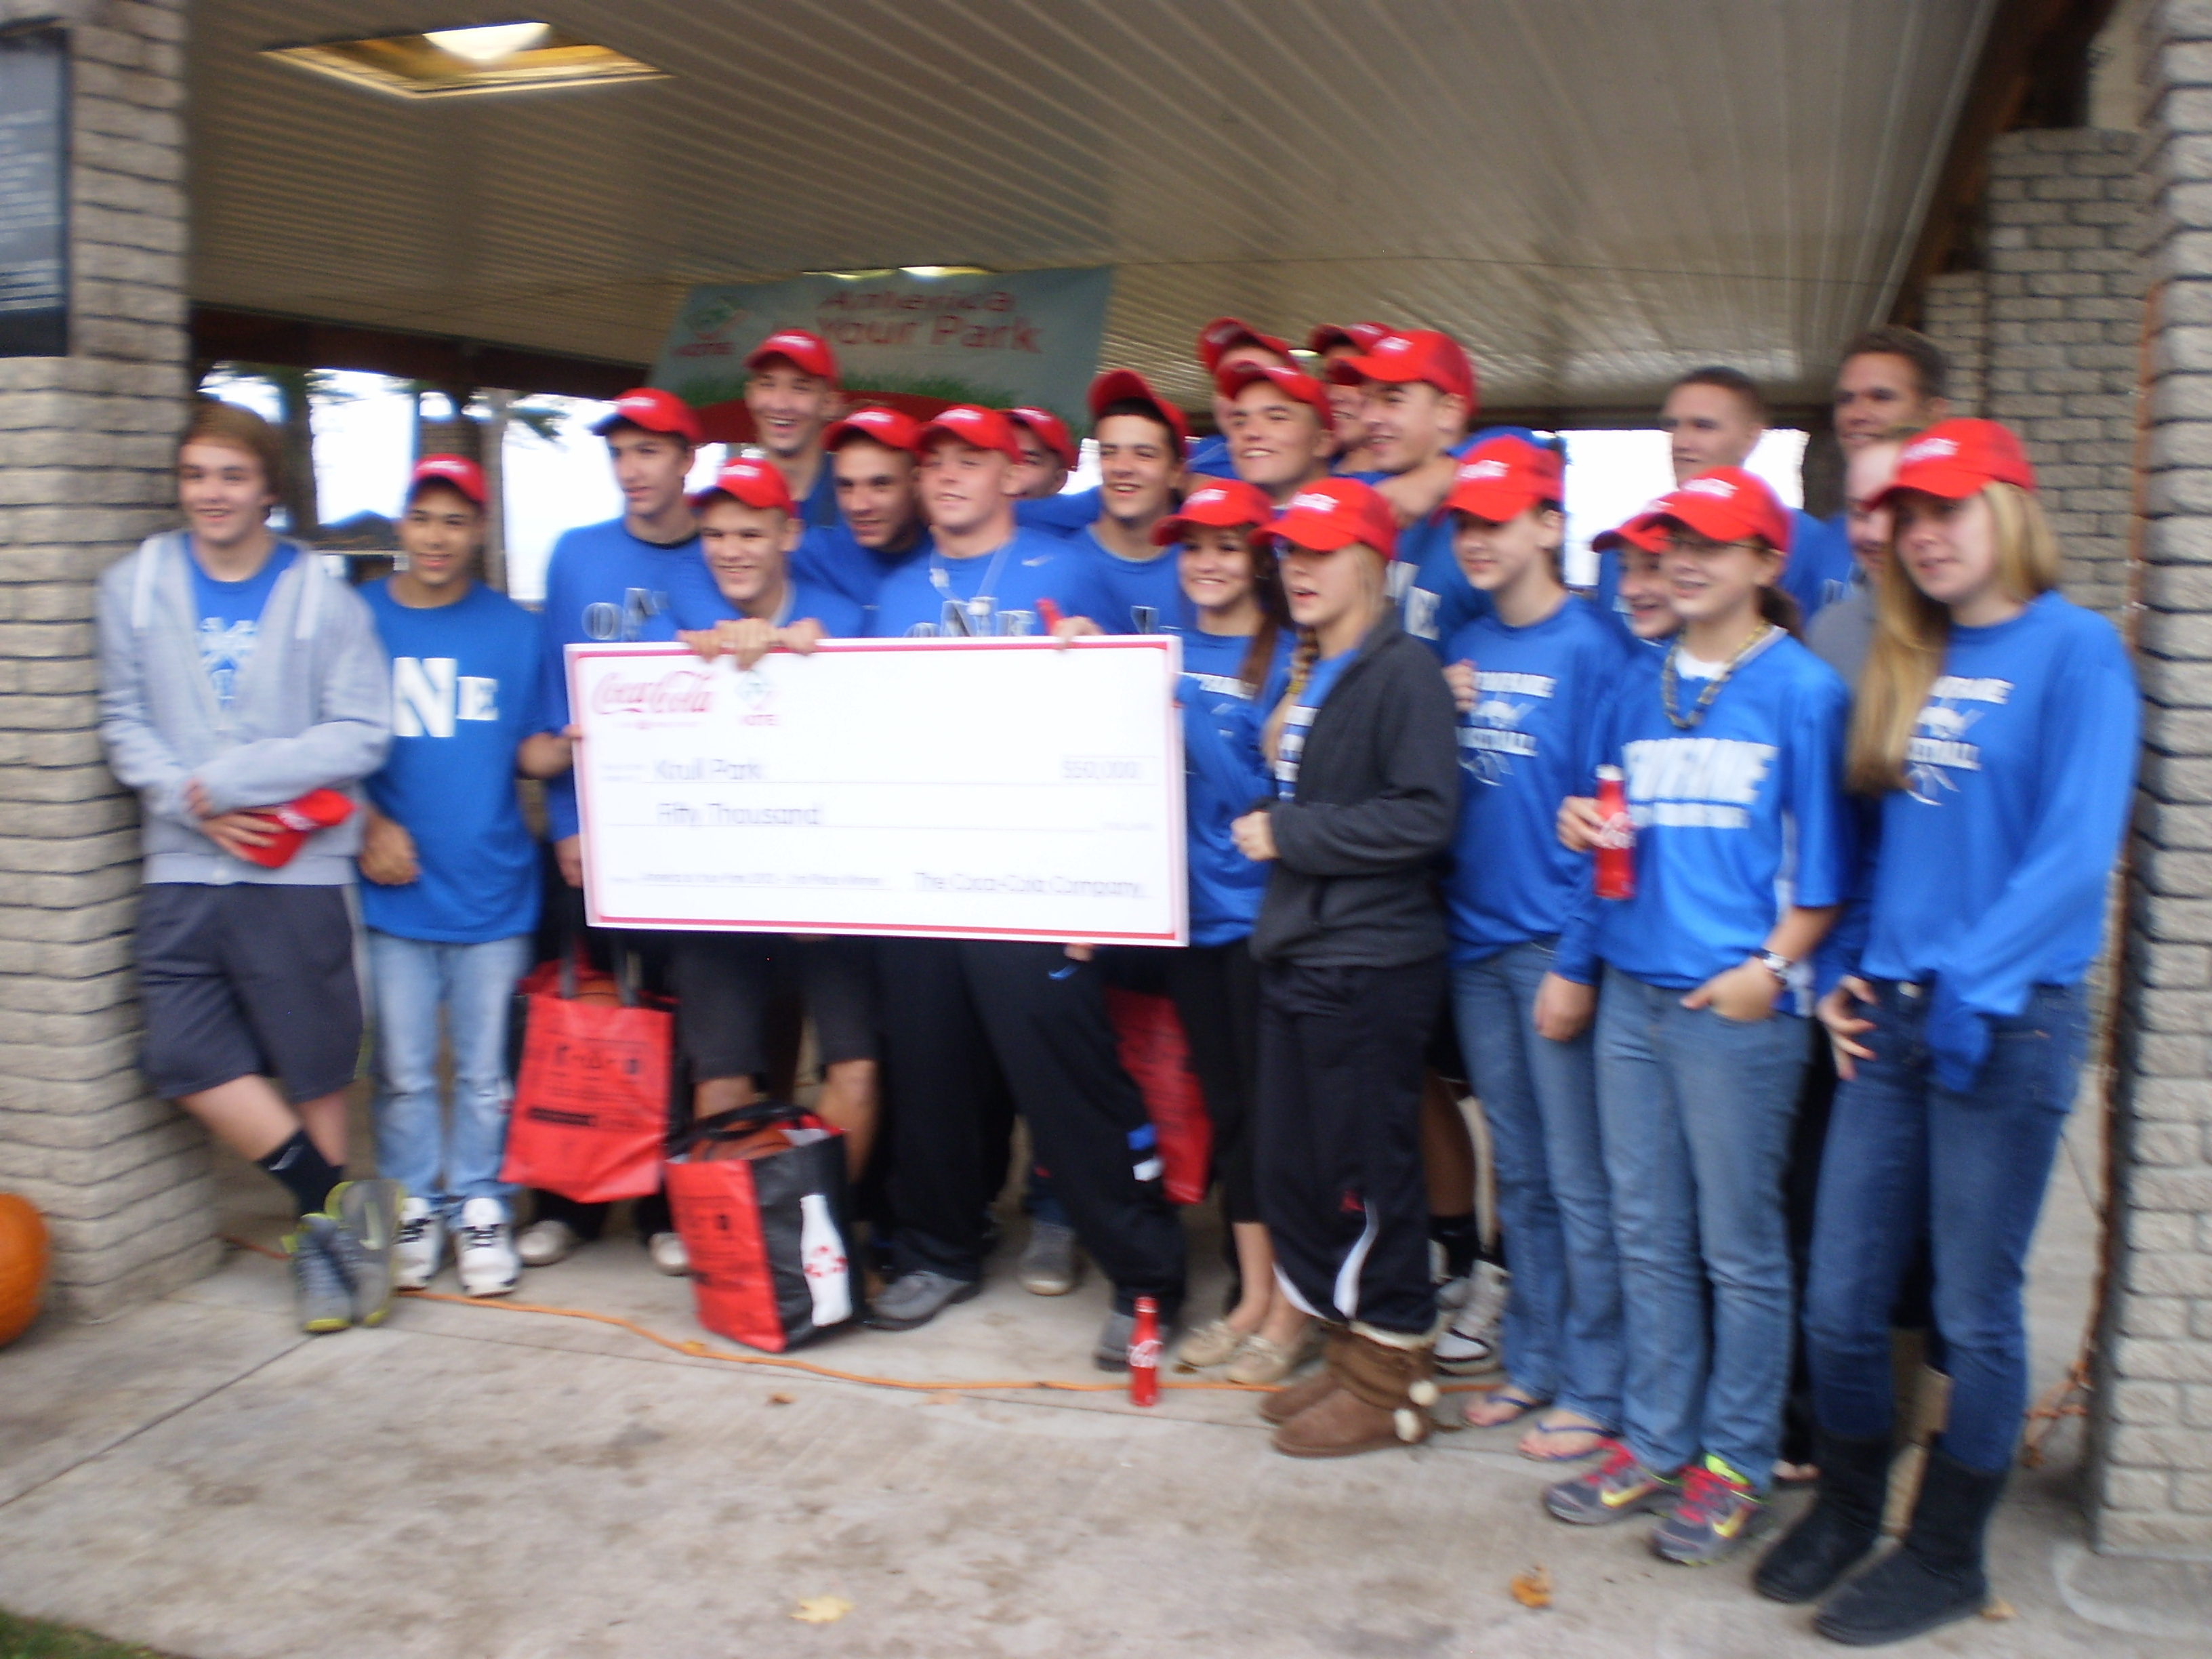 Members of Newfane boys and girls basketball teams holding $50,000 check